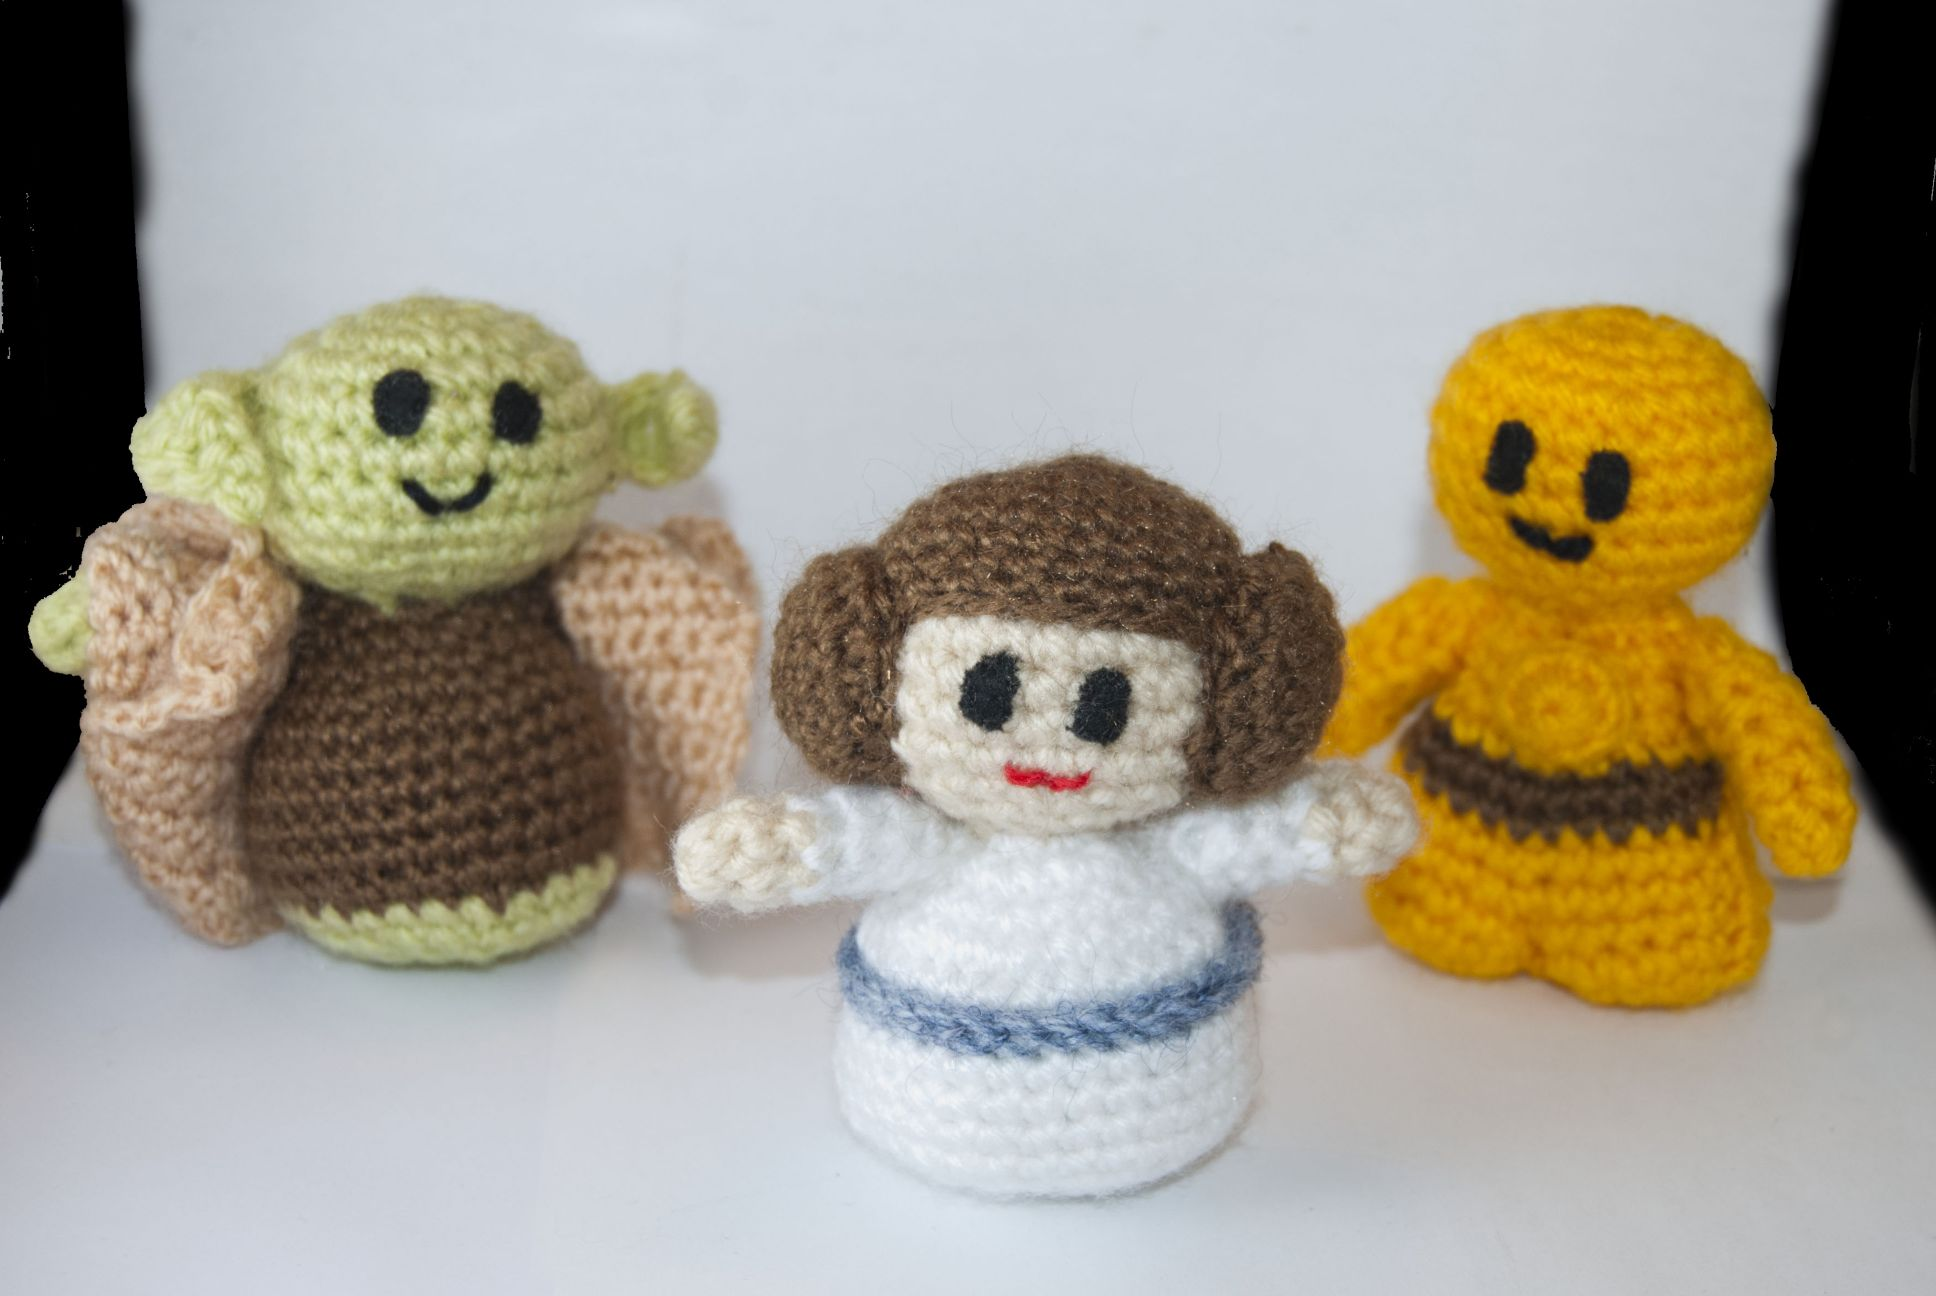 Amigurumi Sewing Machine Pattern : Amigurumi Star Wars